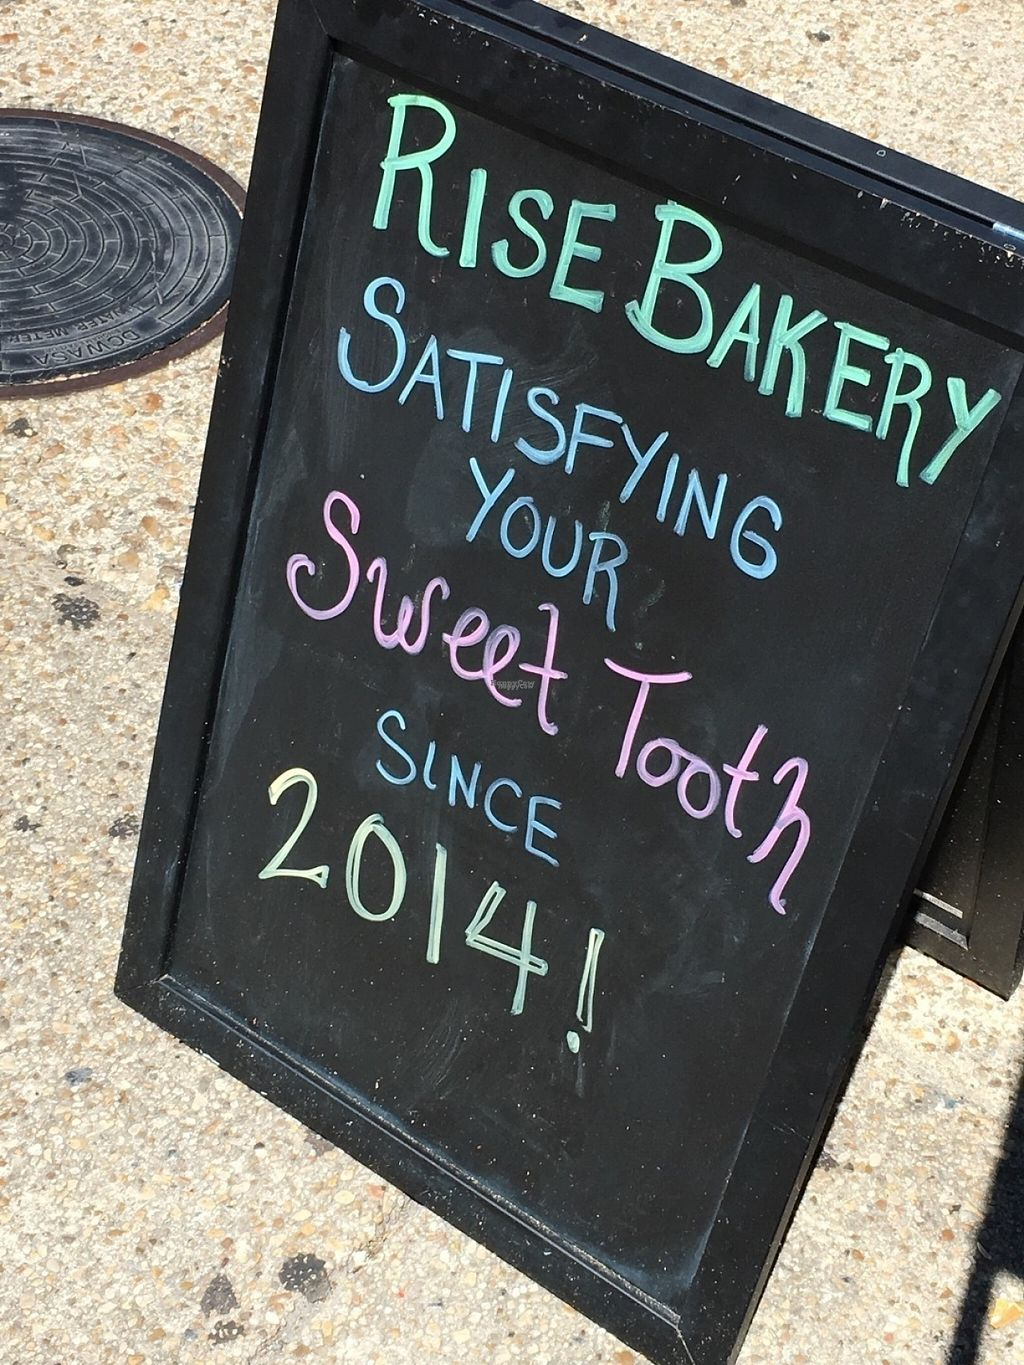 """Photo of Rise Bakery  by <a href=""""/members/profile/cookiem"""">cookiem</a> <br/>Cool <br/> August 16, 2016  - <a href='/contact/abuse/image/57276/169305'>Report</a>"""